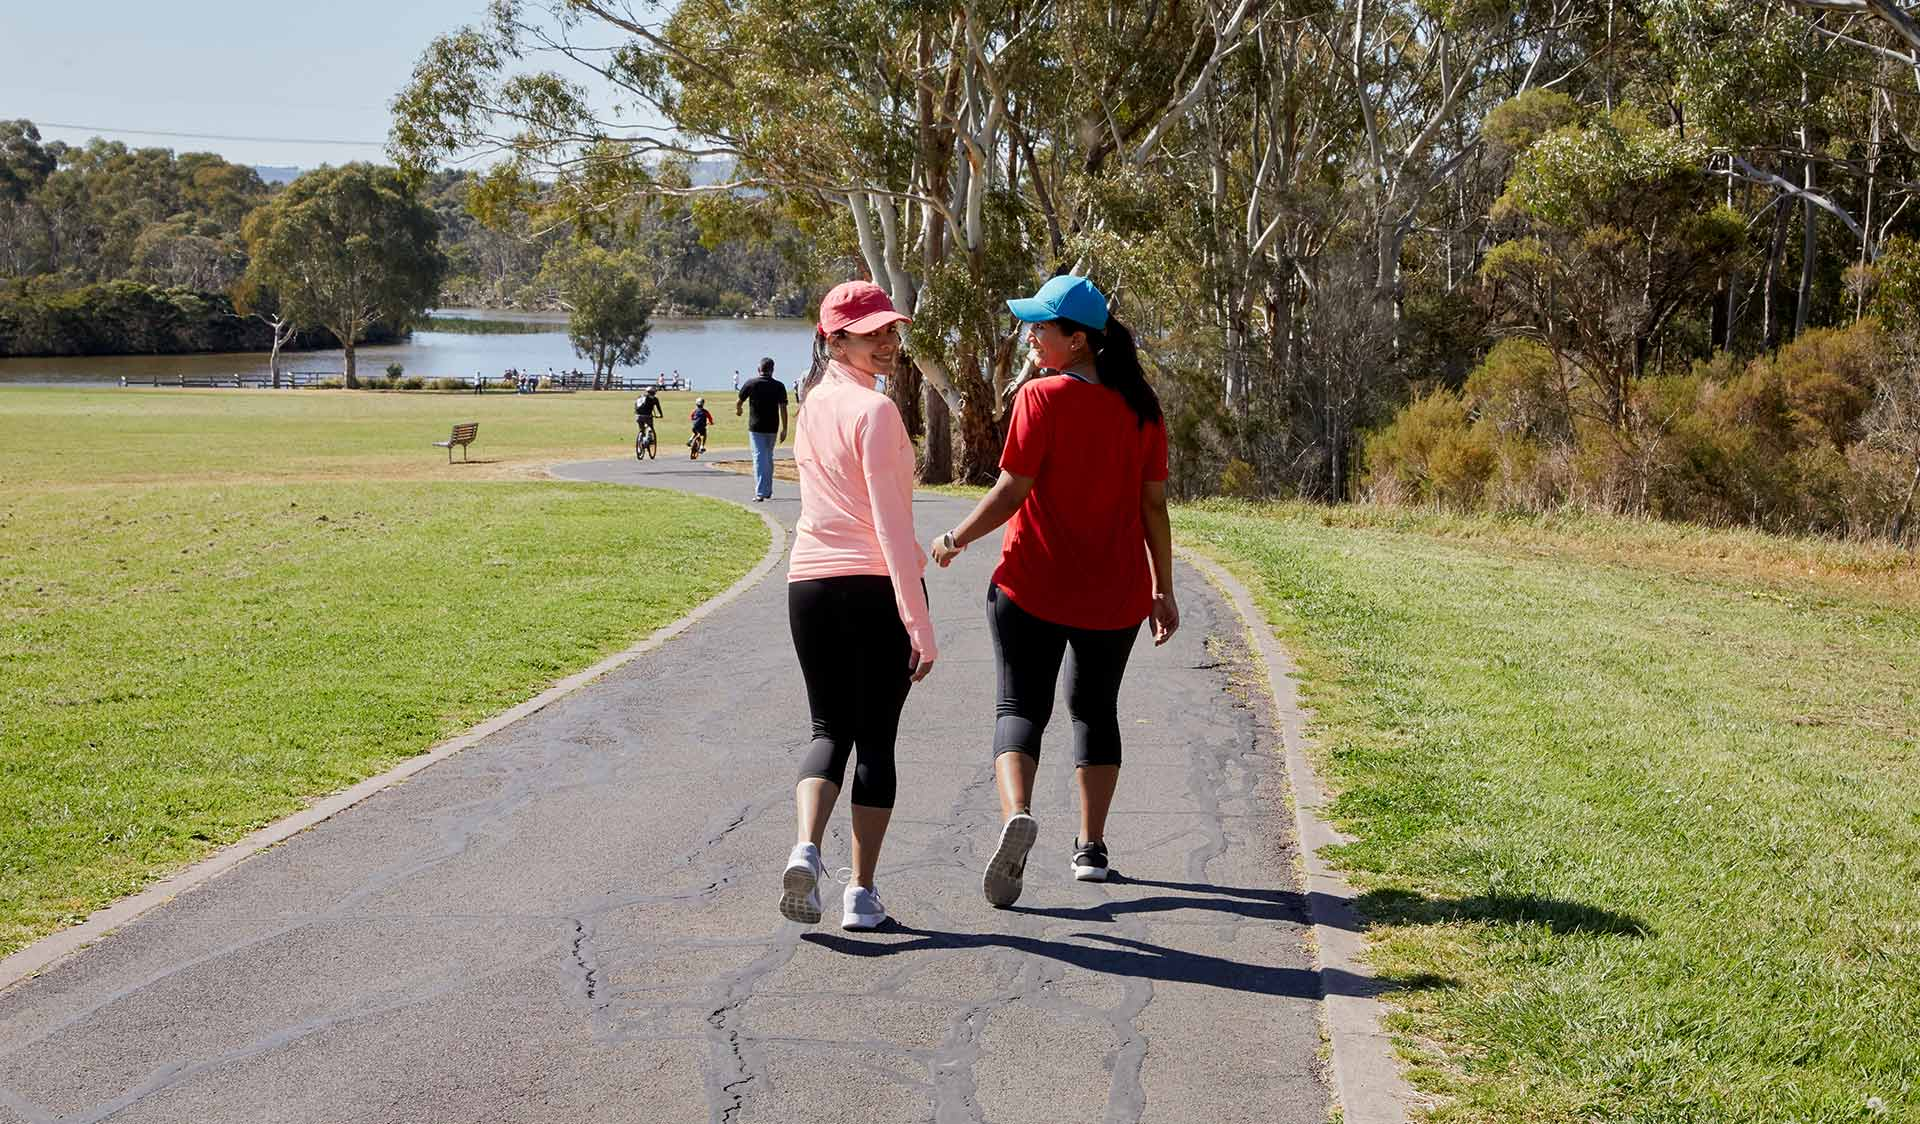 Two women in activewear walking around the lake for exercise